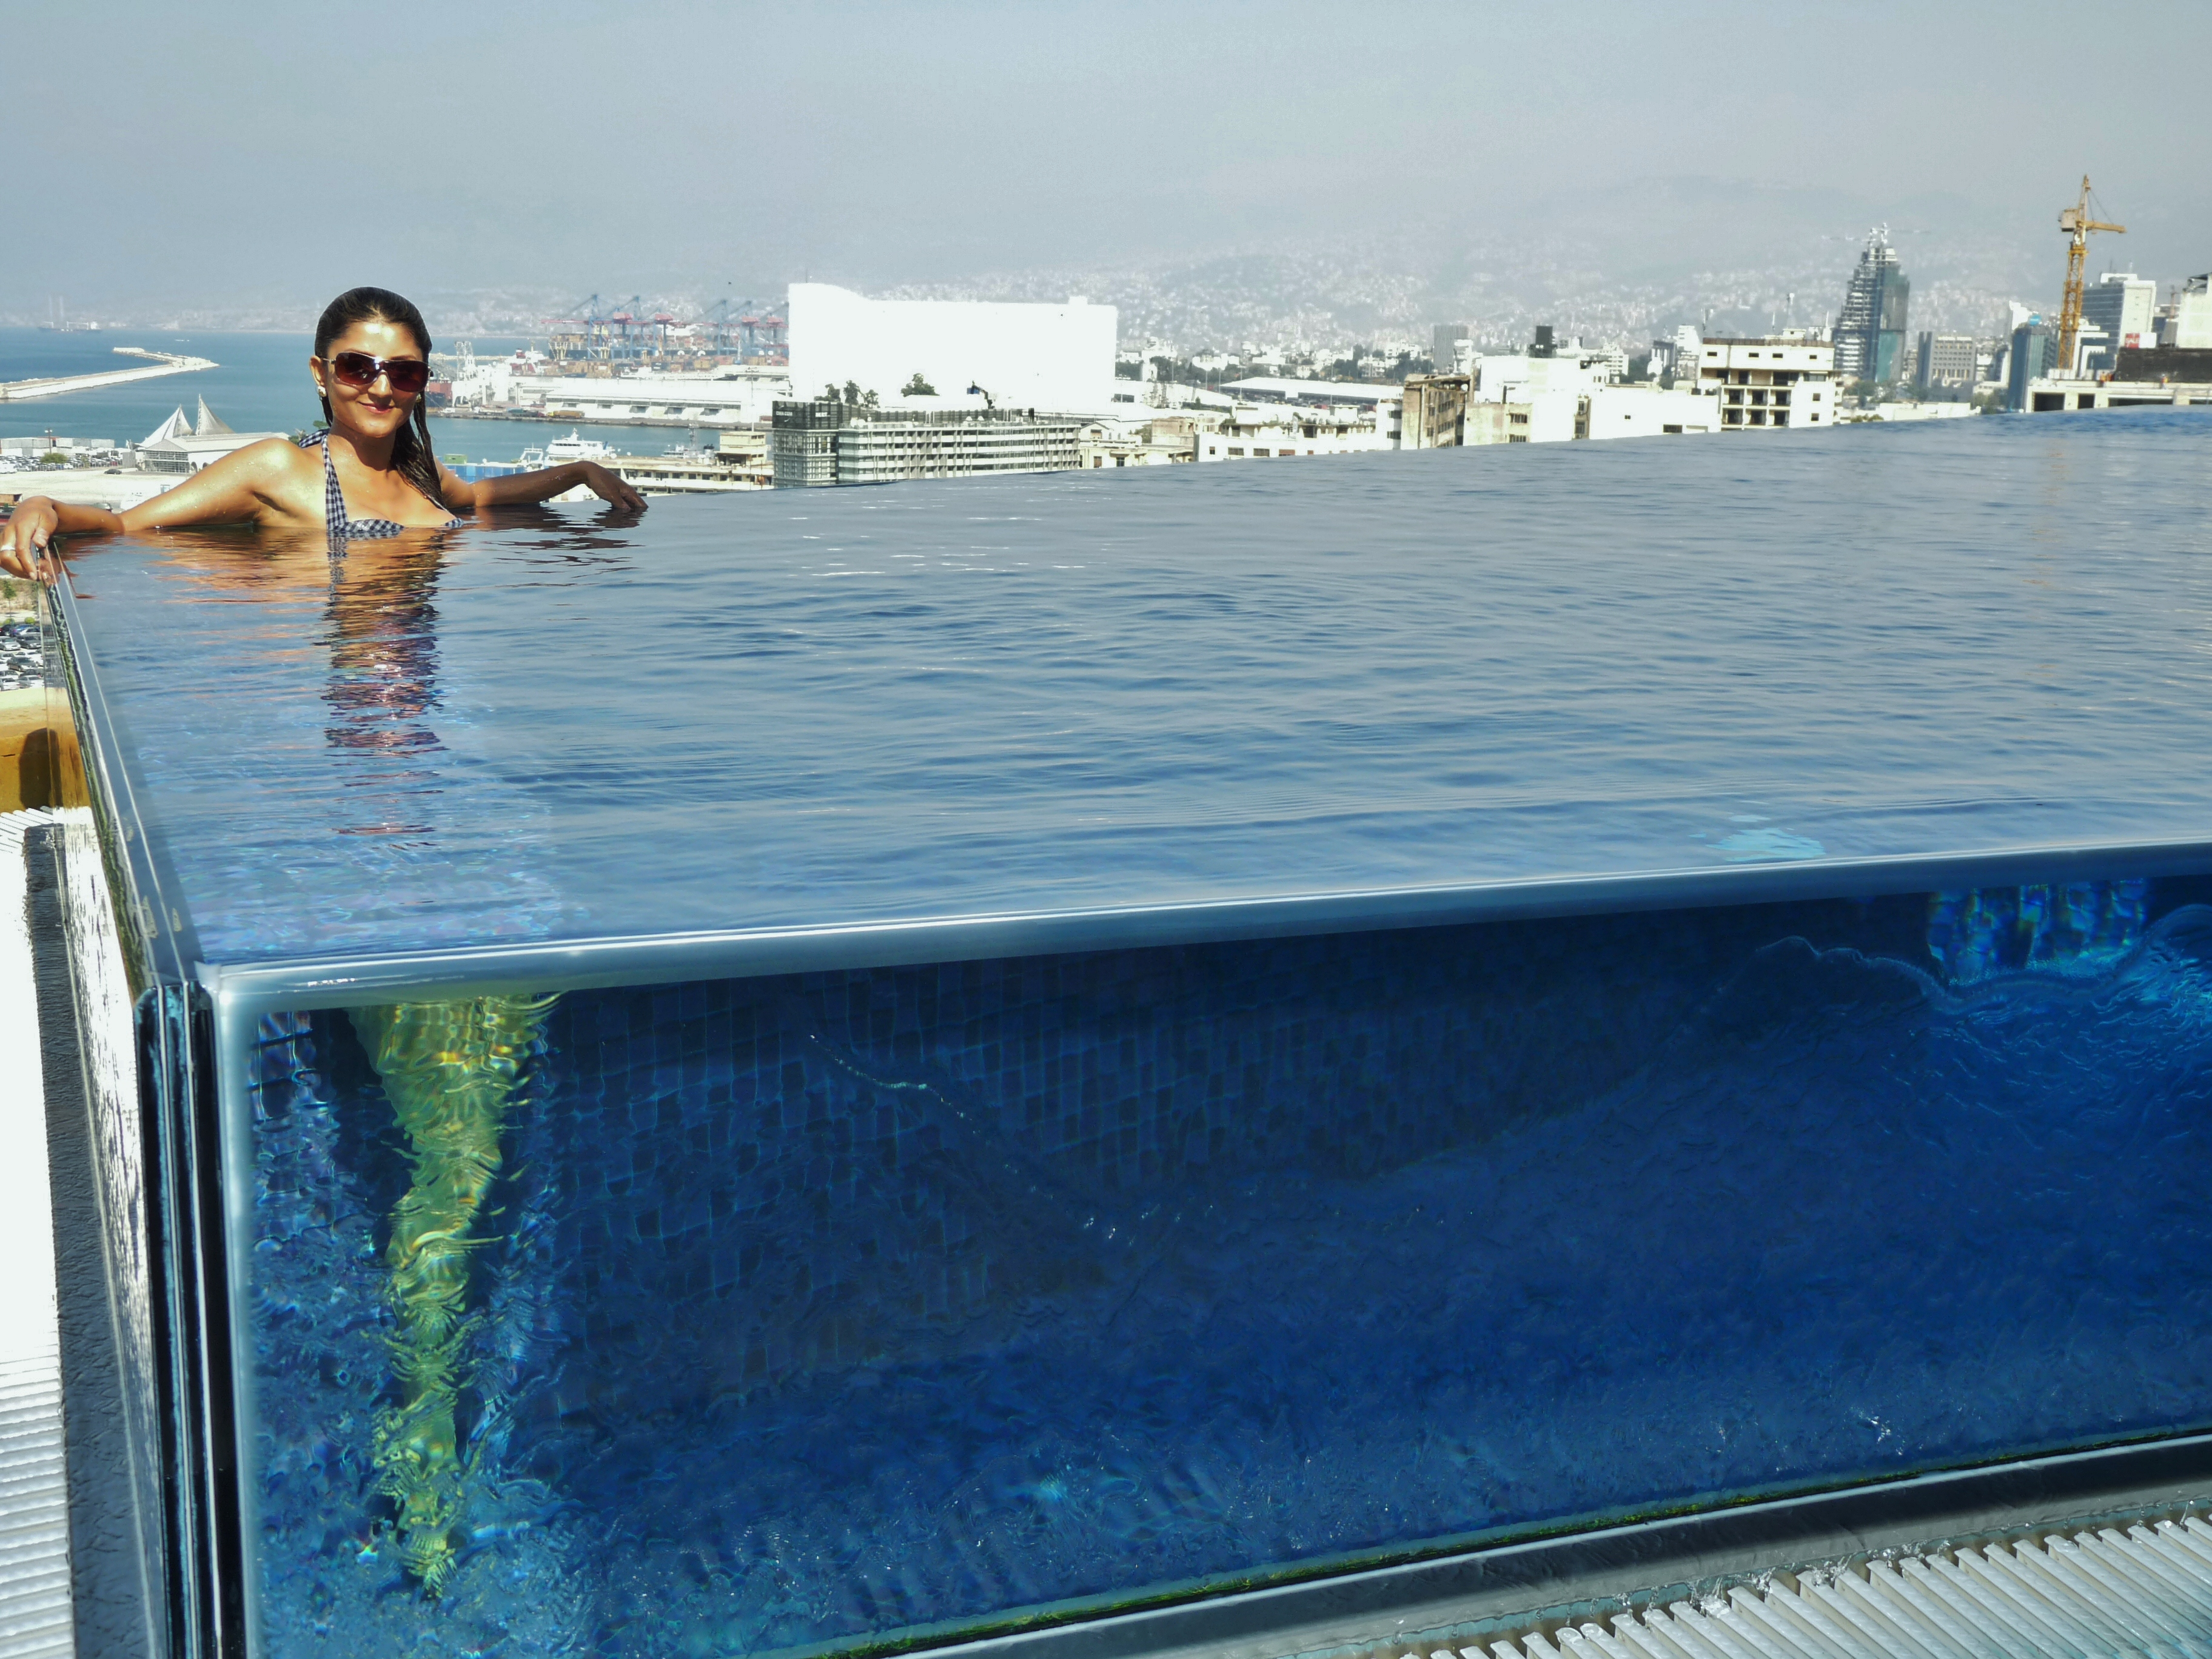 Law Of Refraction Demonstrated Perfectly By Glass Box Rooftop Infinity Pool Overlooking Beirut